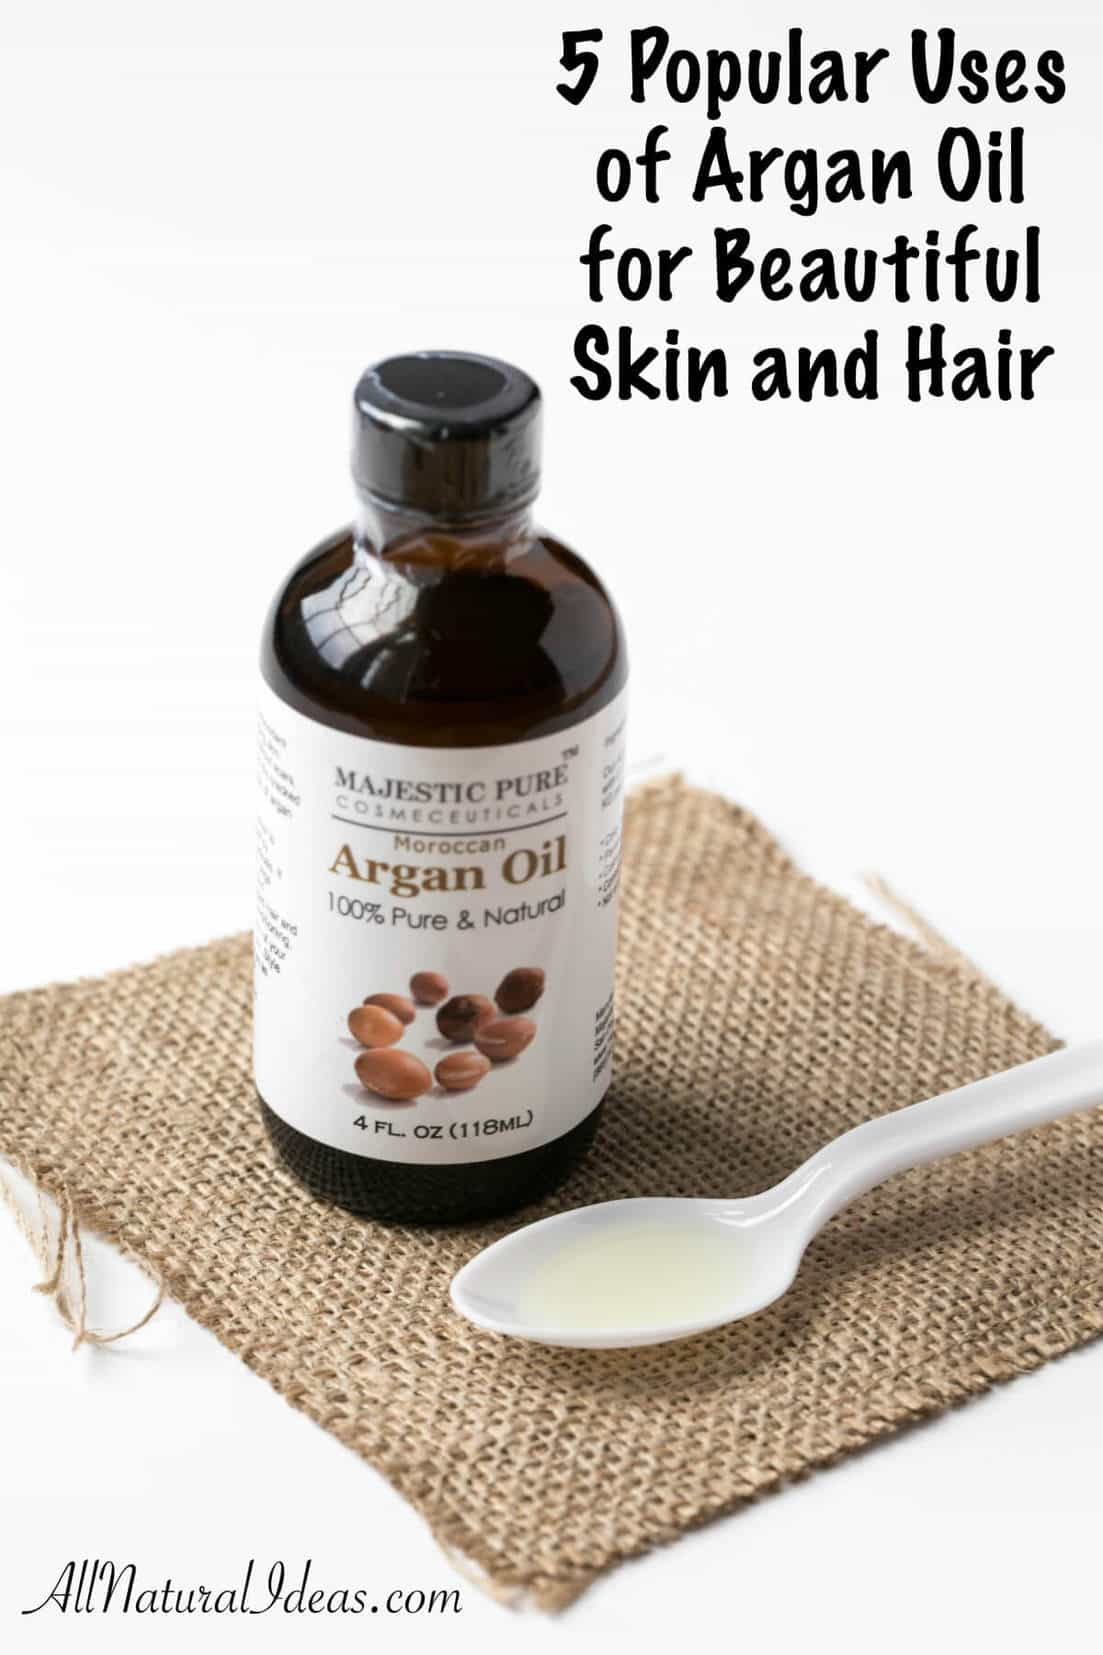 It's becoming popular to use argan oil for skin and hair worldwide. Regular use of argan oil is sure to make your skin and hair more youthful and healthier.